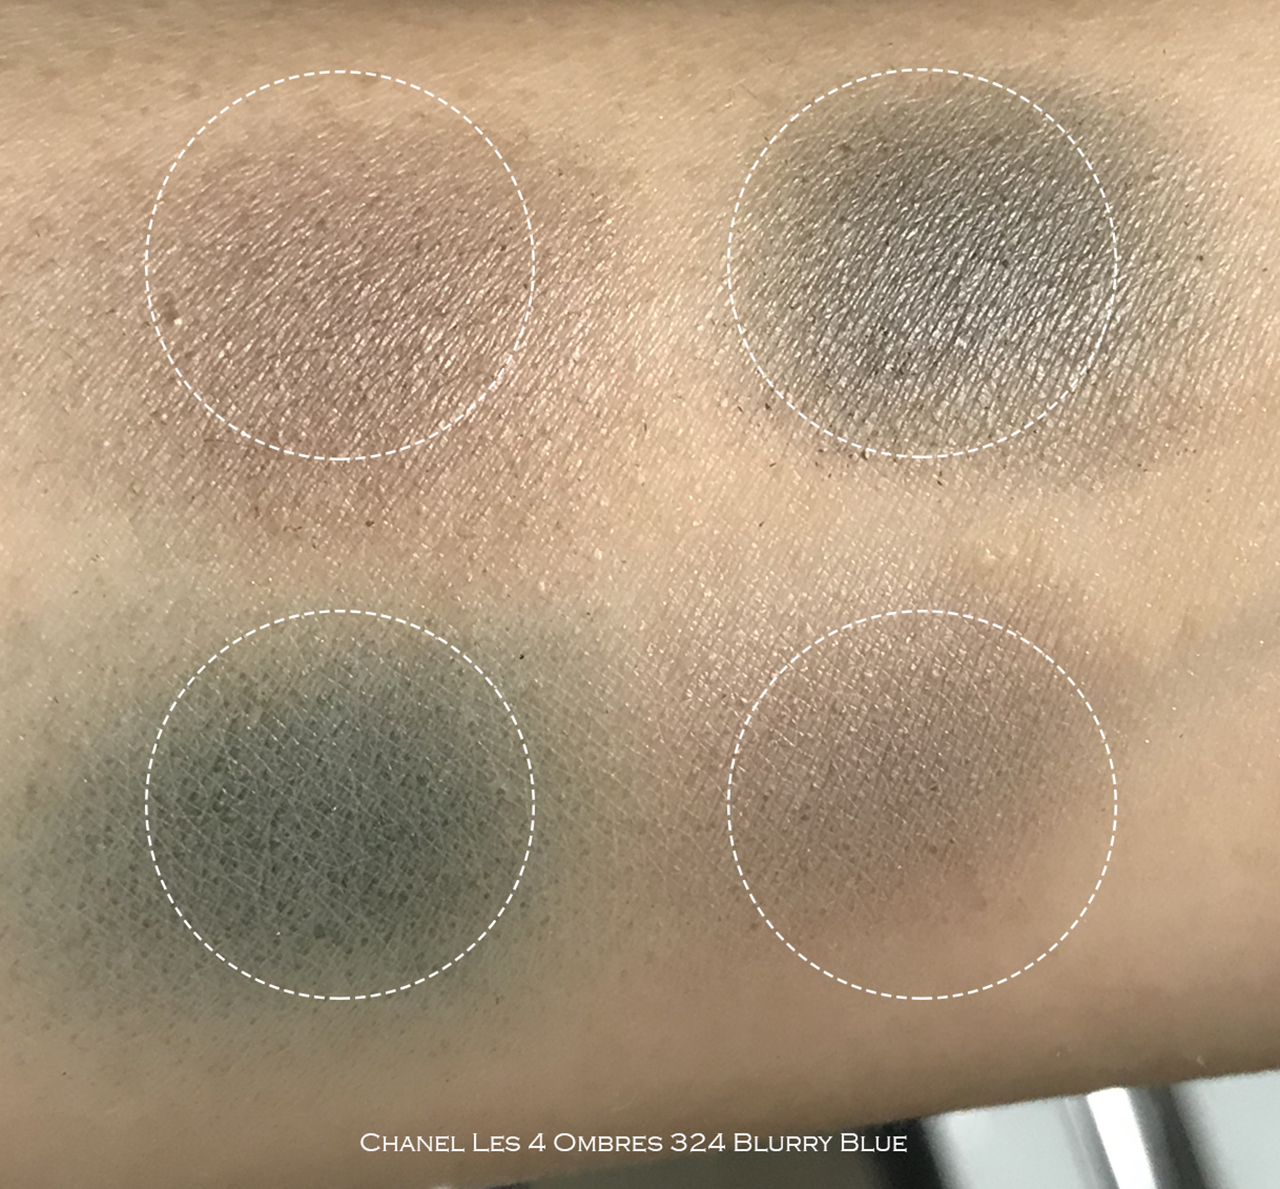 Chanel Blurry Blue swatches